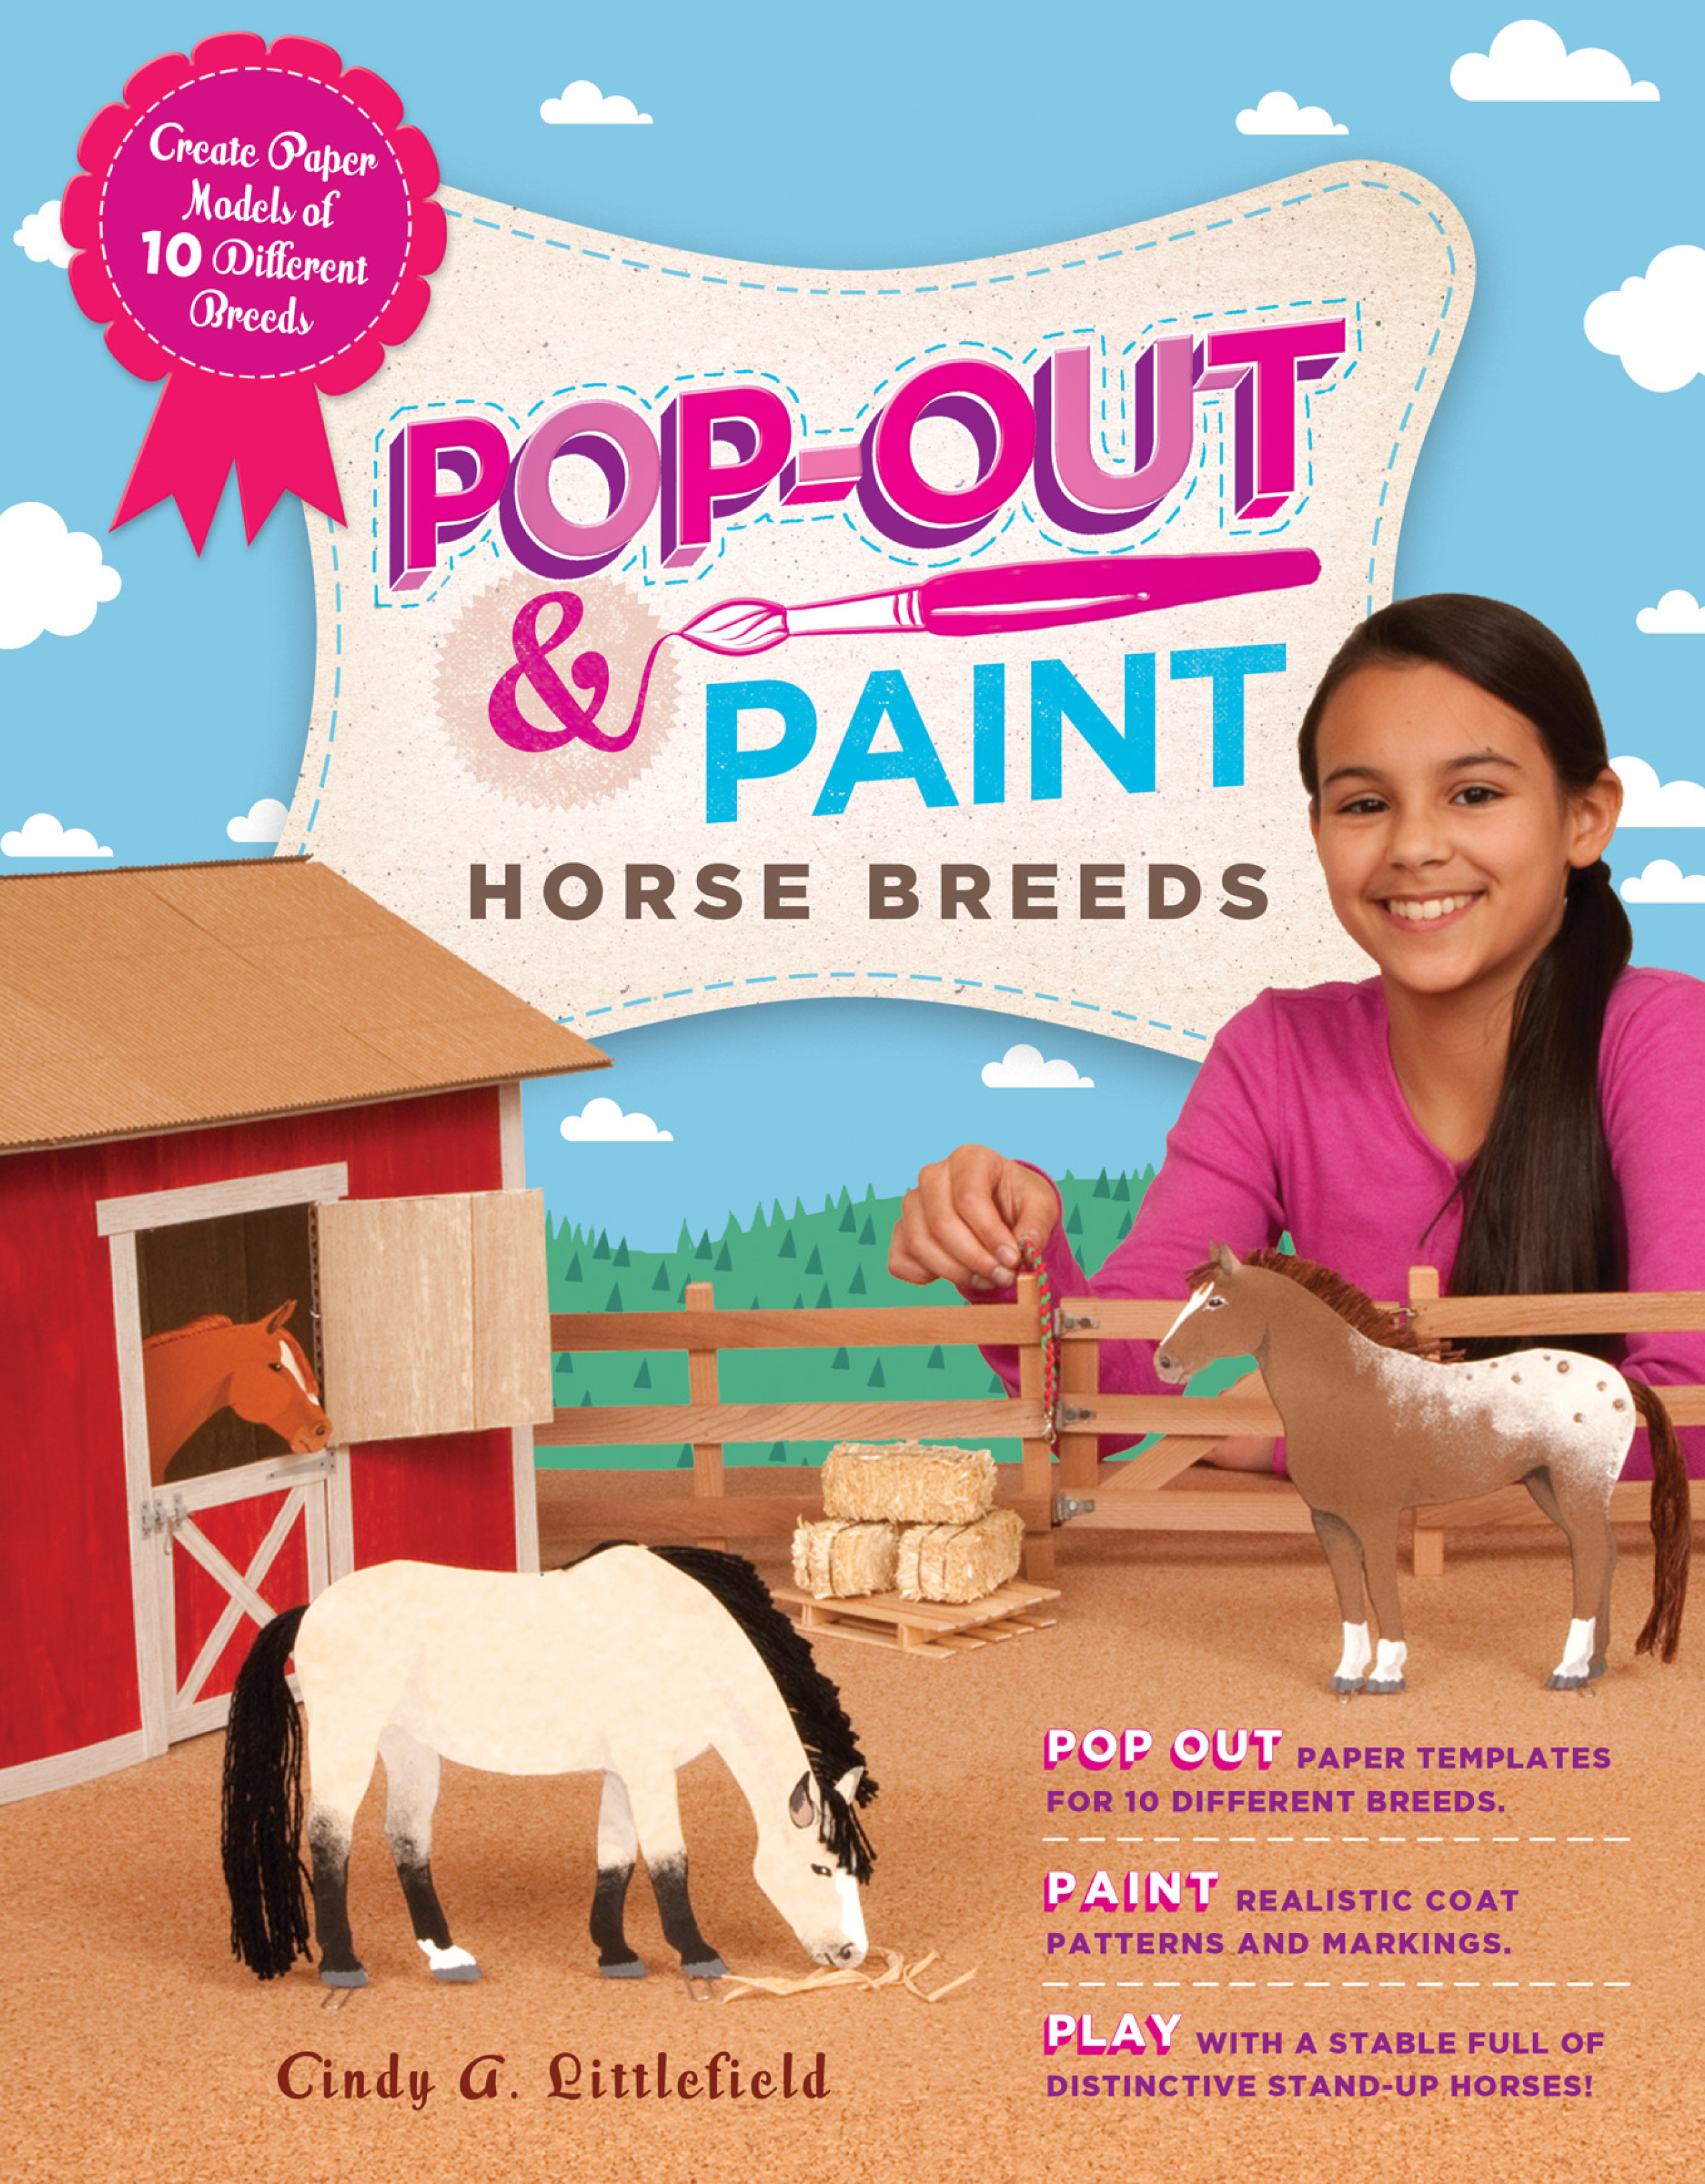 Pop-Out & Paint Horse Breeds Create Paper Models of 10 Different Breeds - Cindy A. Littlefield